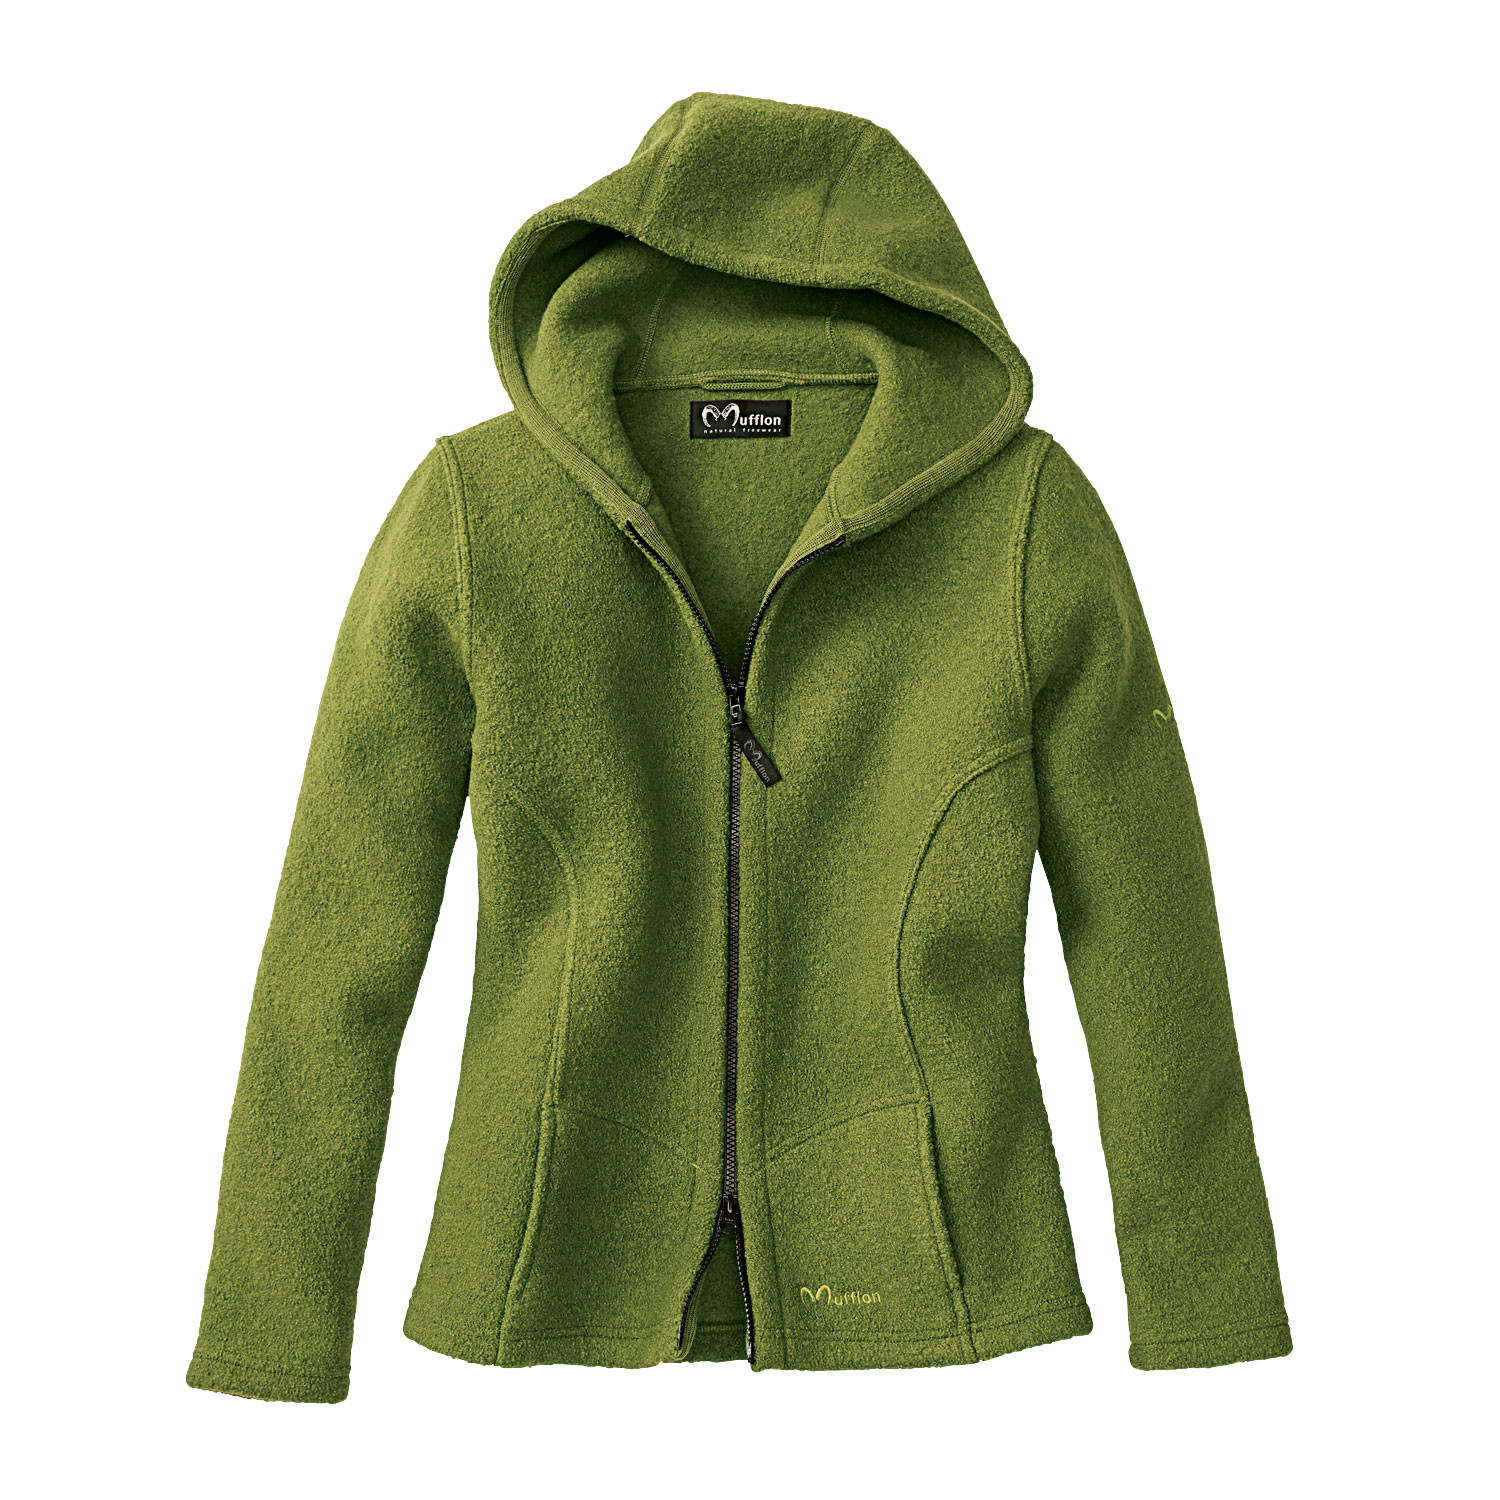 Walkjacke mit Kapuze, avocado